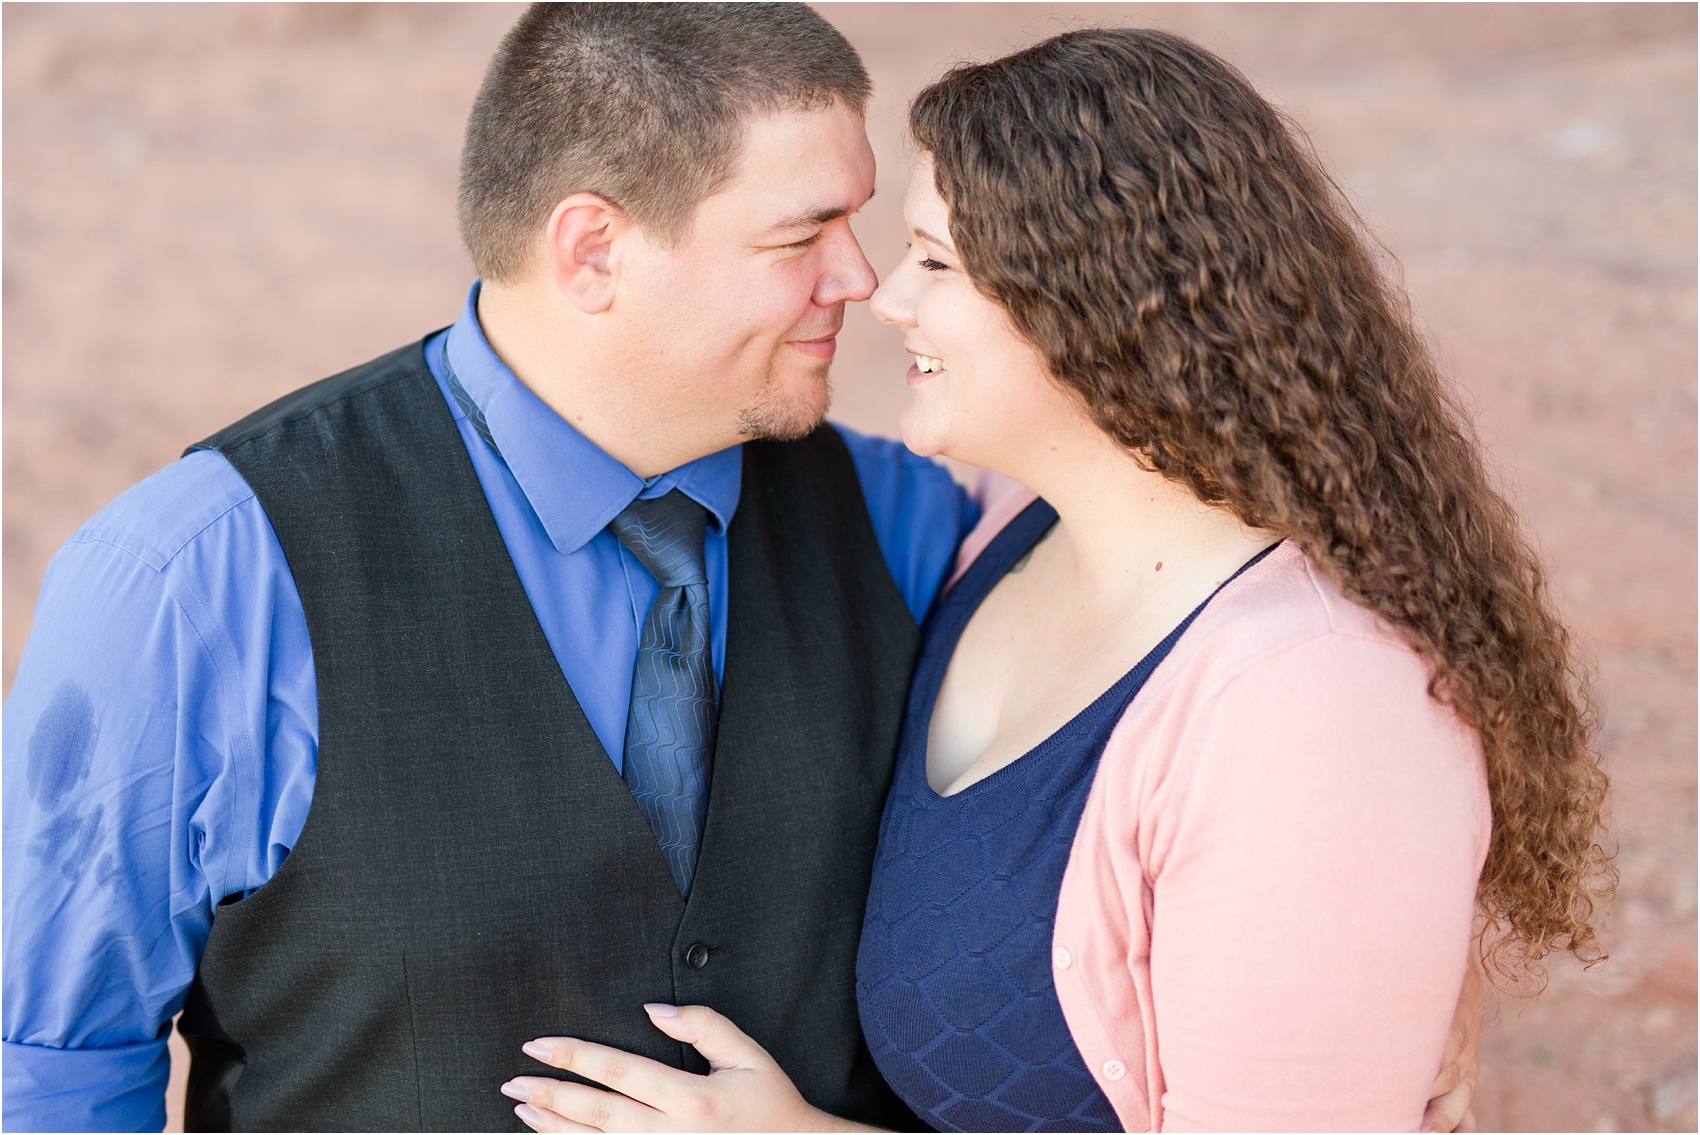 romantic-desert-engagement-photos-in-scottsdale-arizona-courtney-carolyn-photography-by-katelyn-james_0022.jpg